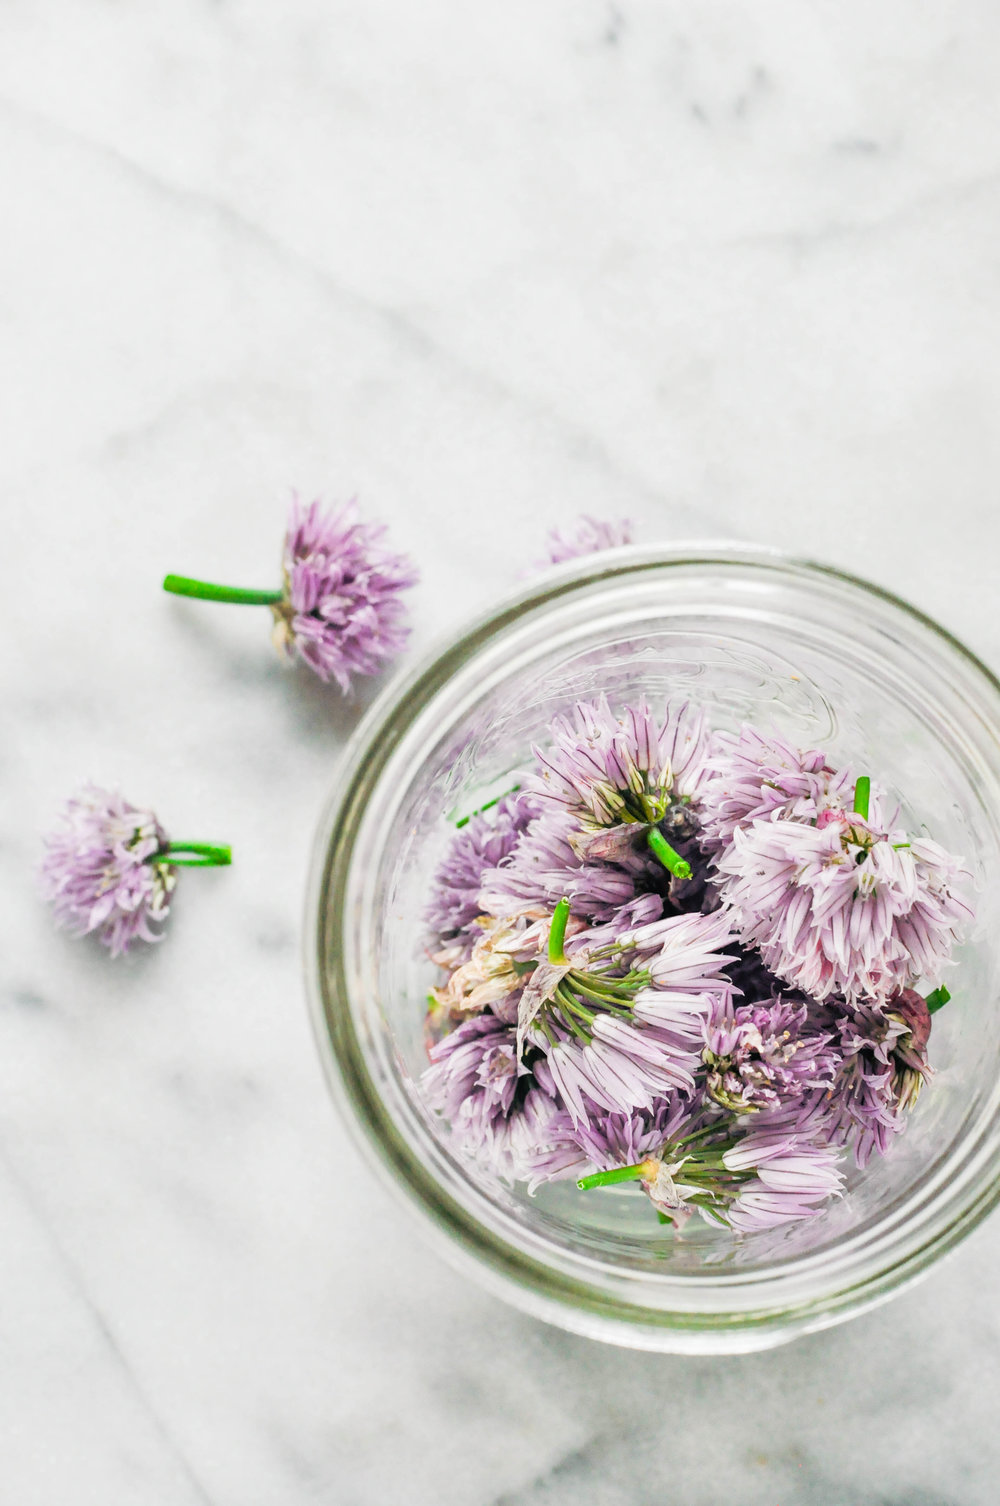 How to Make & Use Chive Blossom Vinegar | This Healthy Table